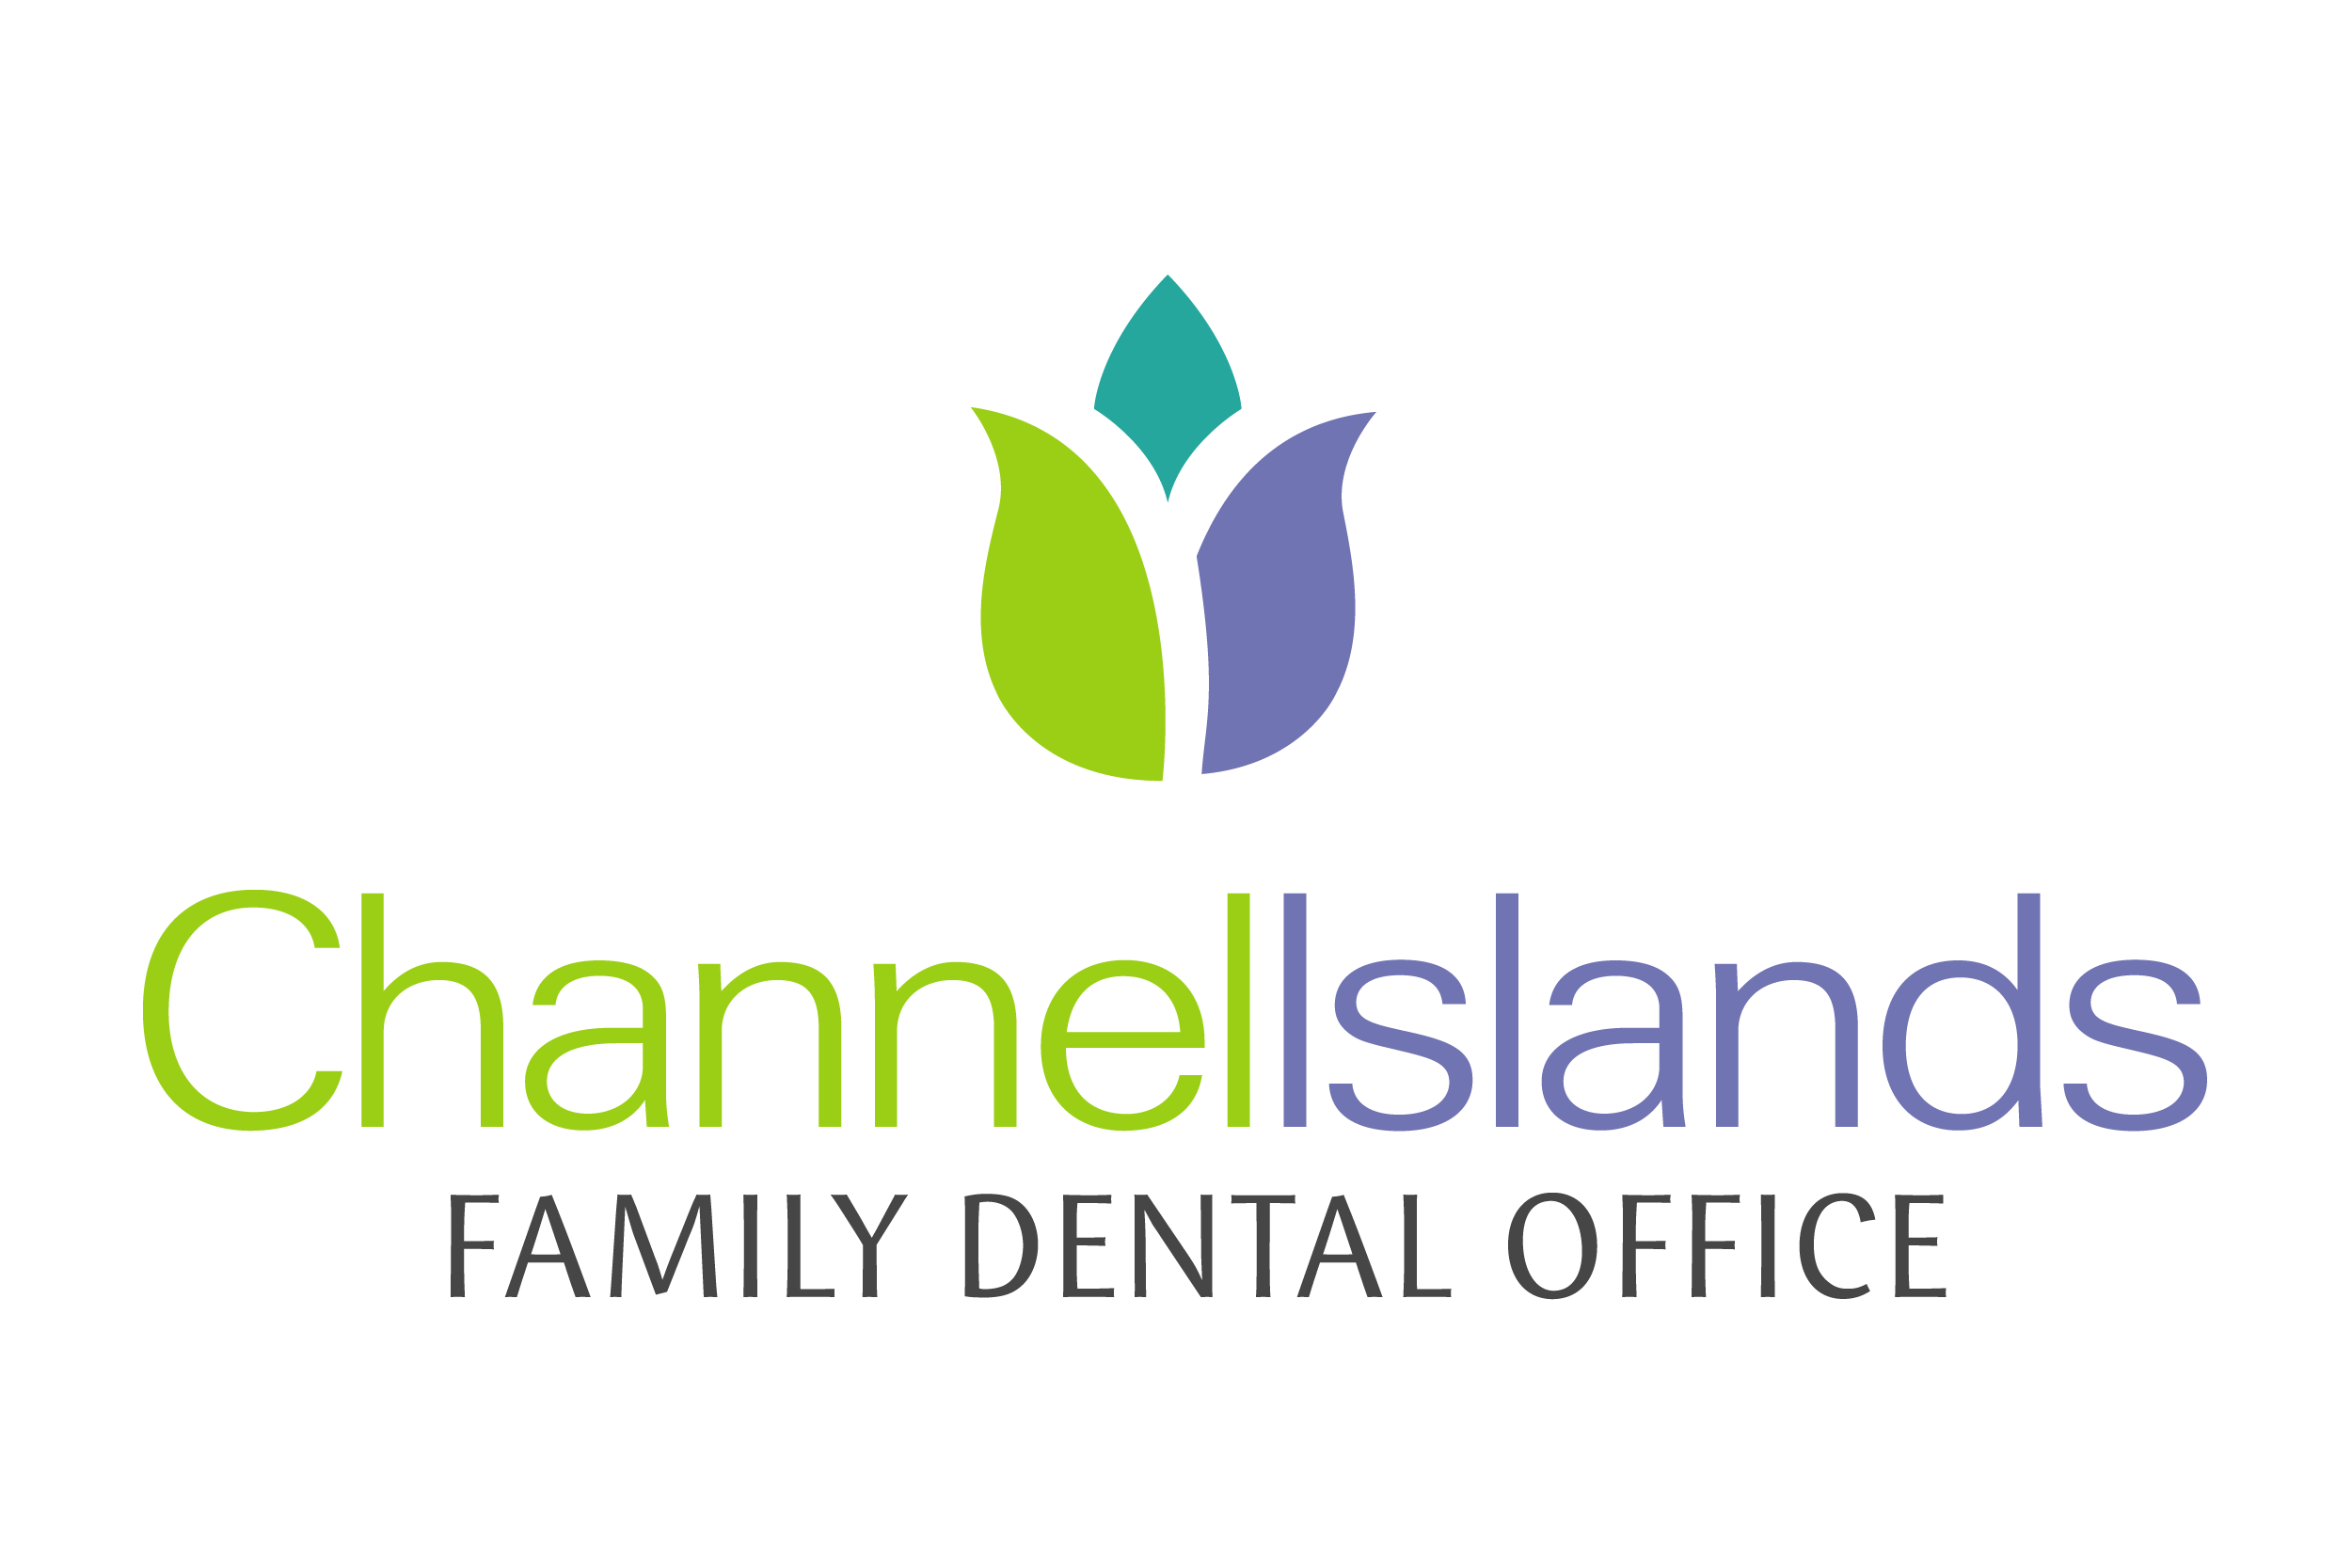 Channel Islands Family Dental Office – Port Hueneme, Ventura Ca 93041